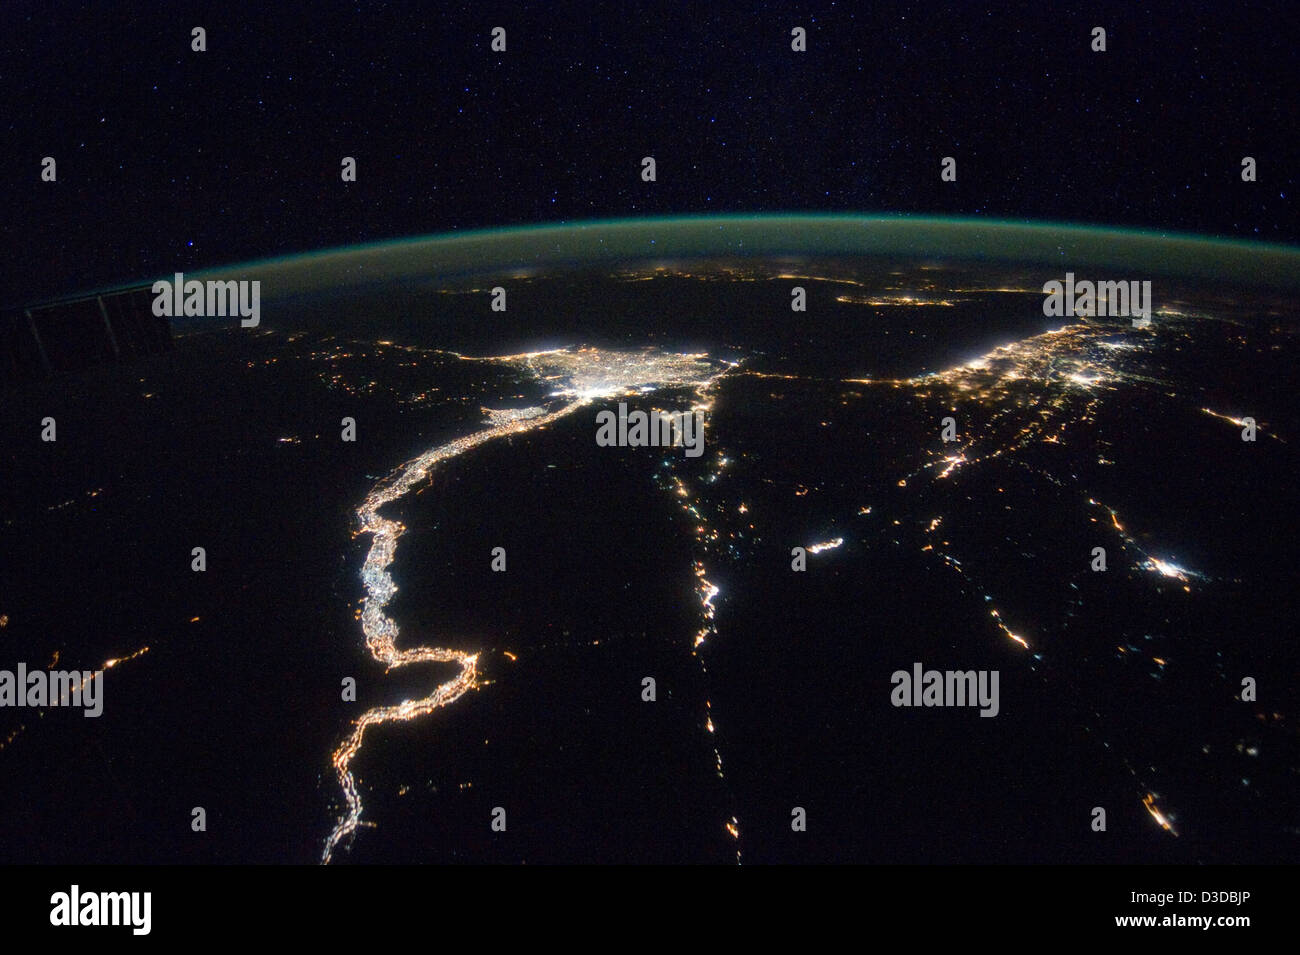 A Night View Around the Mediterranean Sea (NASA, International Space Station, 02/25/12) - Stock Image